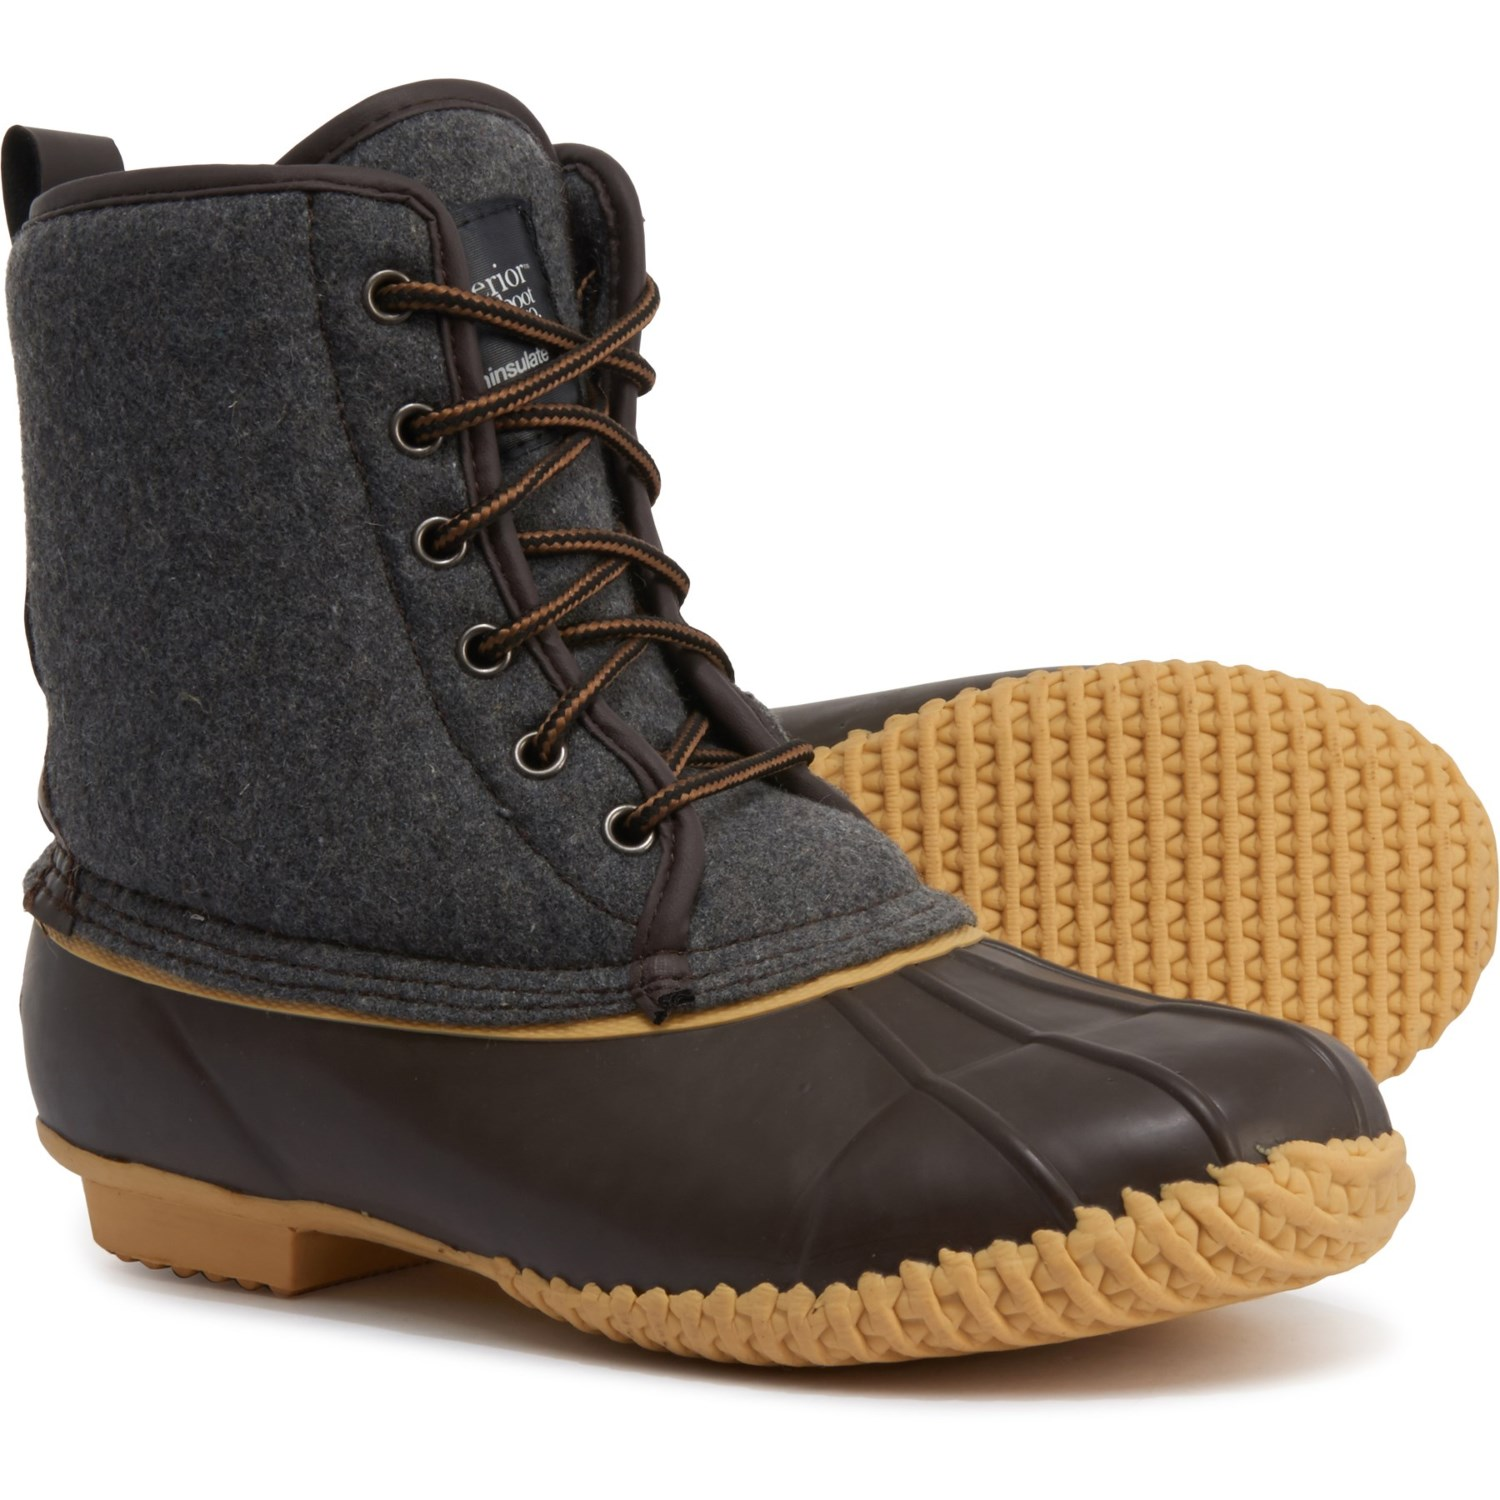 SUPERIOR BOOT CO. Felt Duck Boots (For